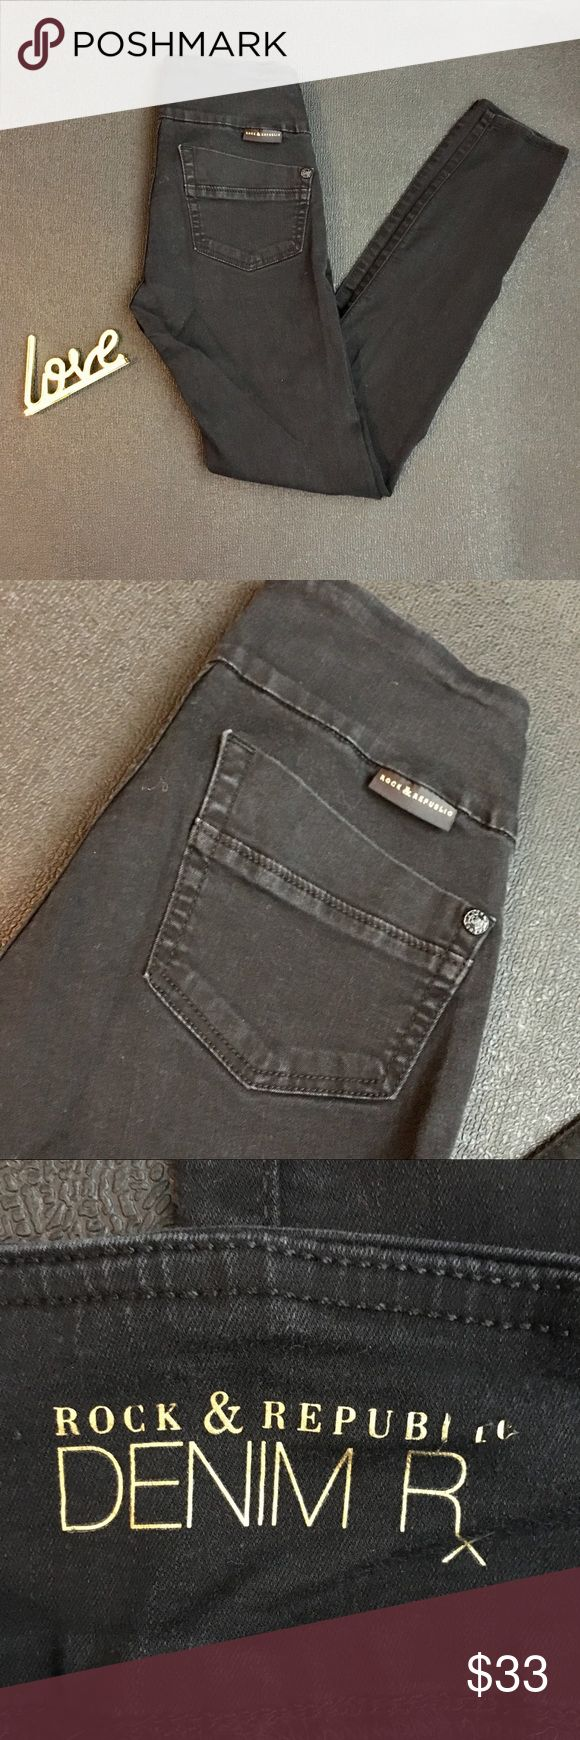 Rock & Republic Denim RX Fever Midrise Leggings Black Rock & Republic Denim RX Fever Midrise Leggings/ pull on jeans   Skinny cut Wide elastic waistband slims your midsection   Worn maybe 6 times. Rock & Republic Jeans Skinny